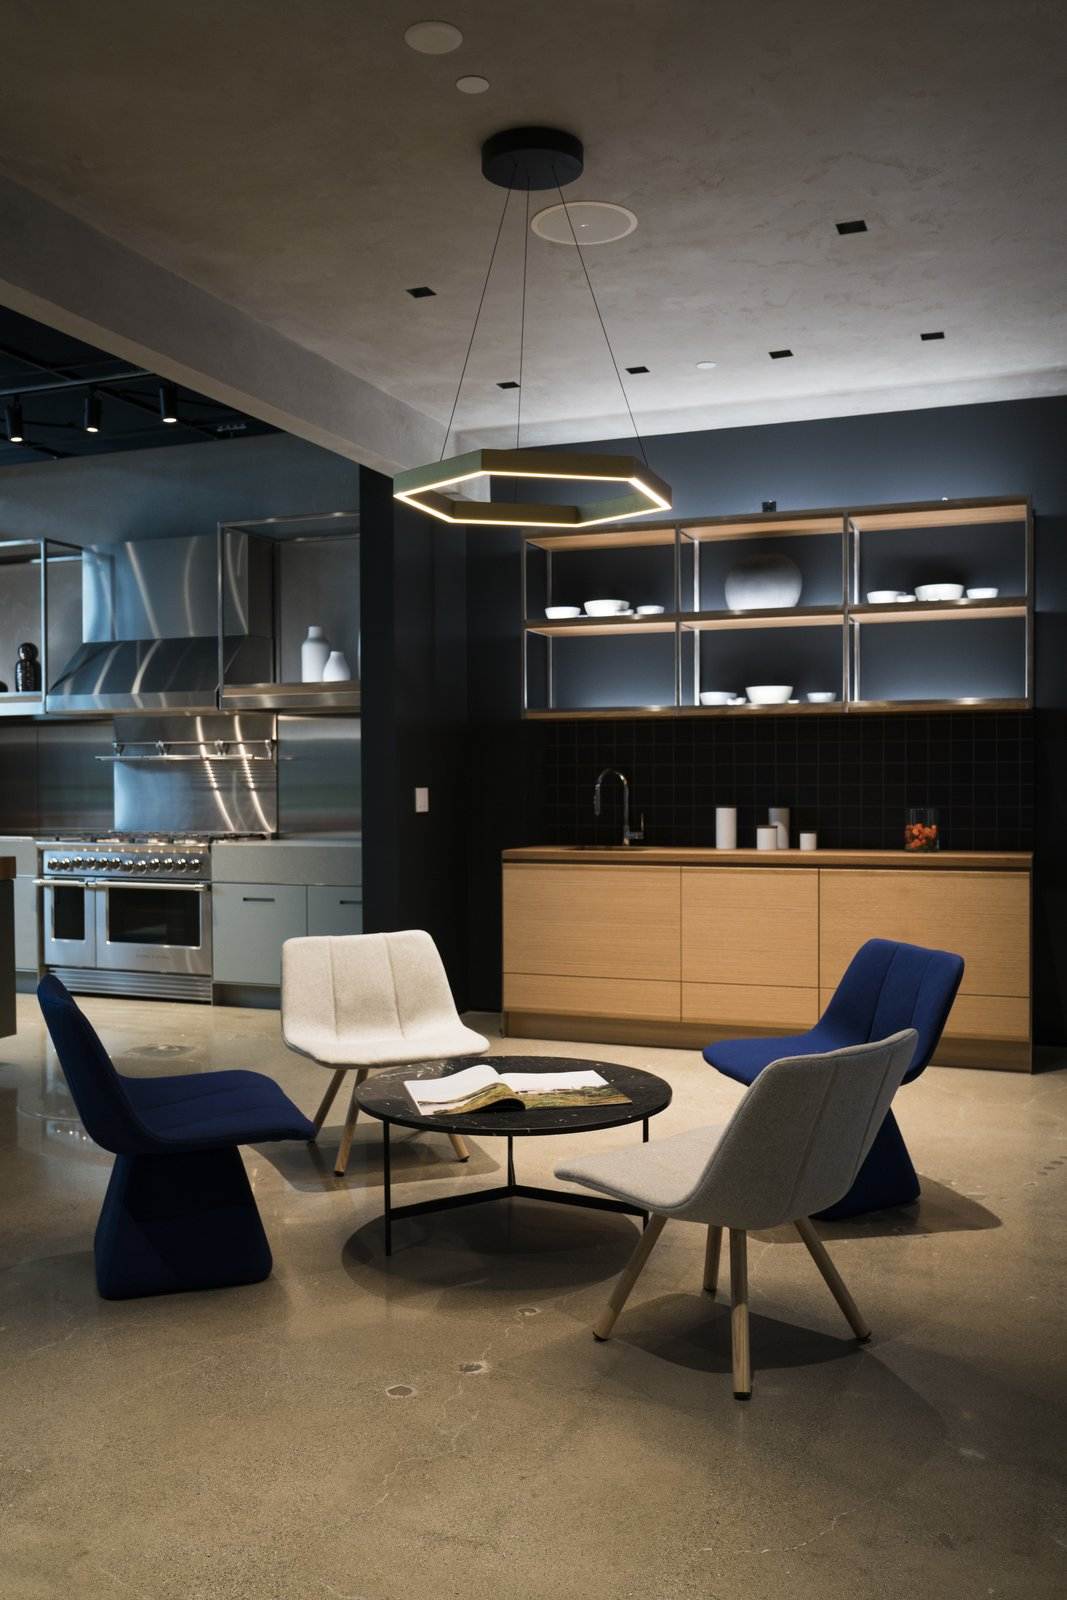 Fisher & Paykel's latest North American showroom, located in Costa Mesa, California, allows design enthusiasts to get up close and personal with powerful appliances that marry aesthetics and functionality.